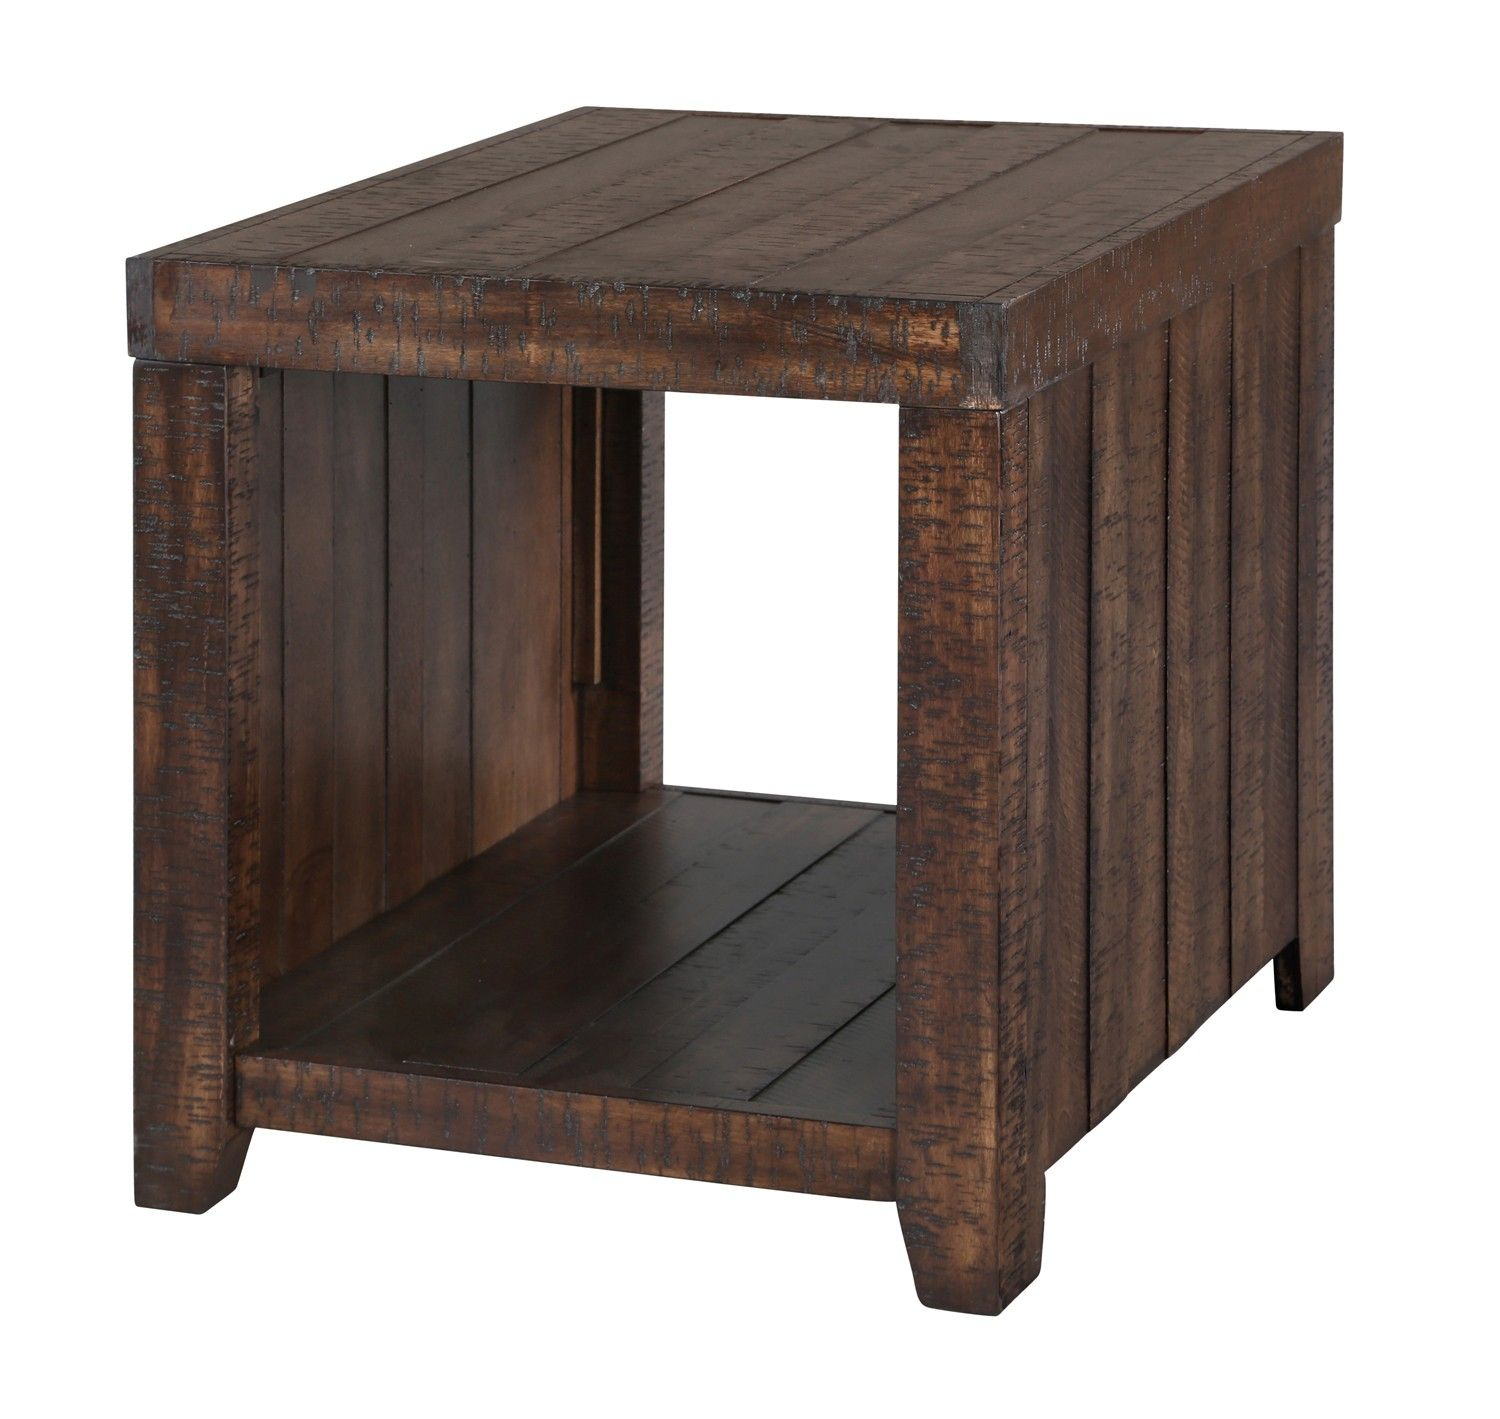 caitlyn end table mor furniture for less home tables tree stump deck buffet and hutch bench with dog crate best modern coffee ethan allen mid century wedge shaped drawer pipes